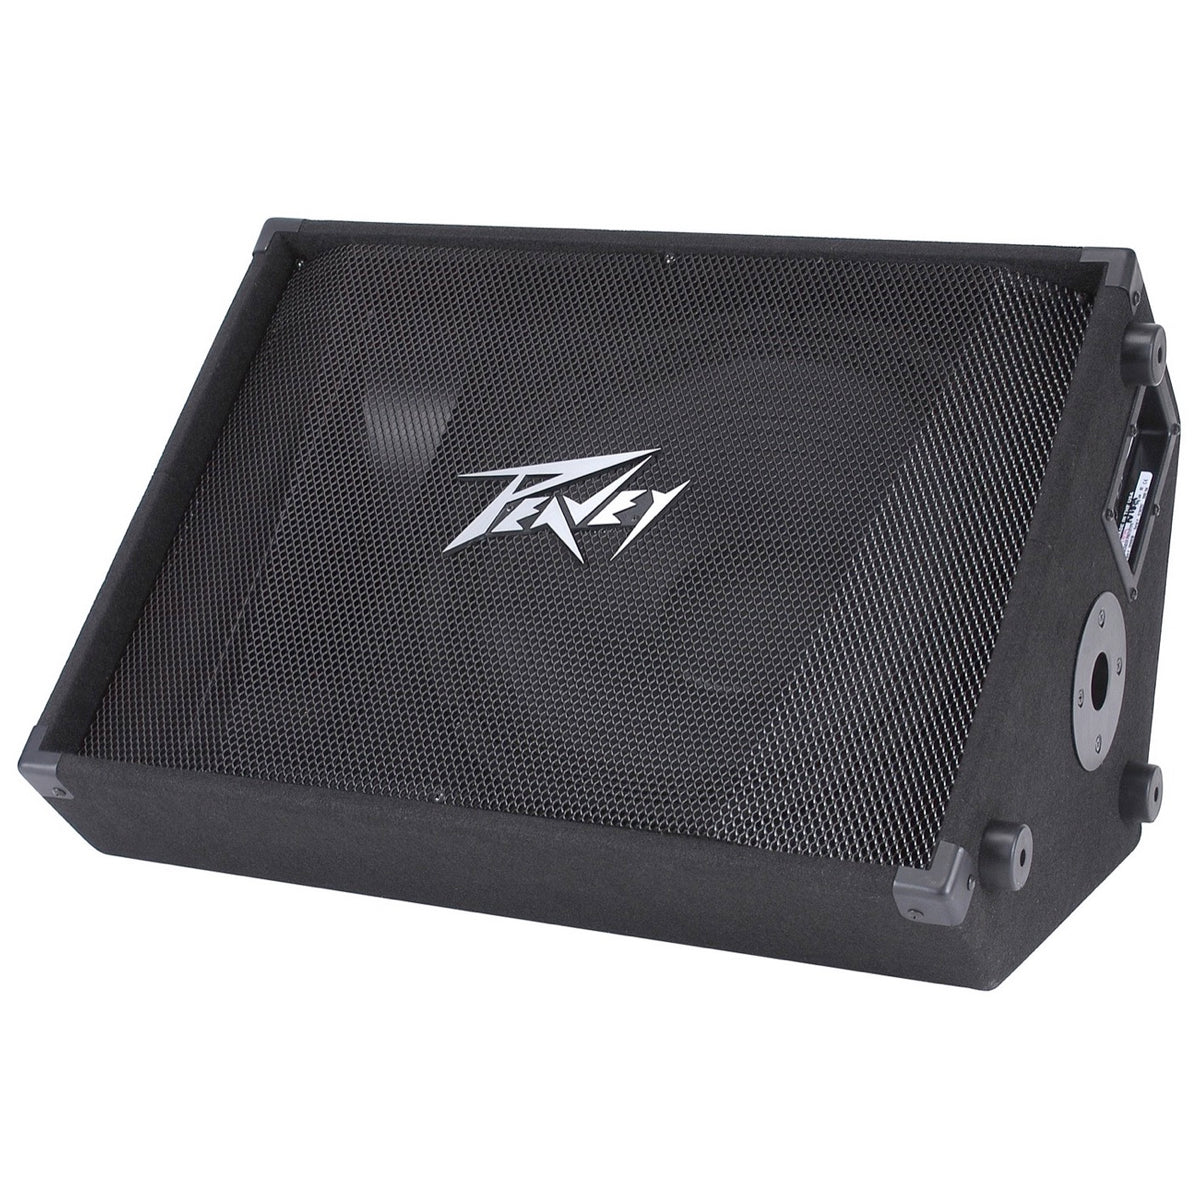 Peavey PV15M Passive, Unpowered Floor Monitor (500 Watts, 1x15 Inch)